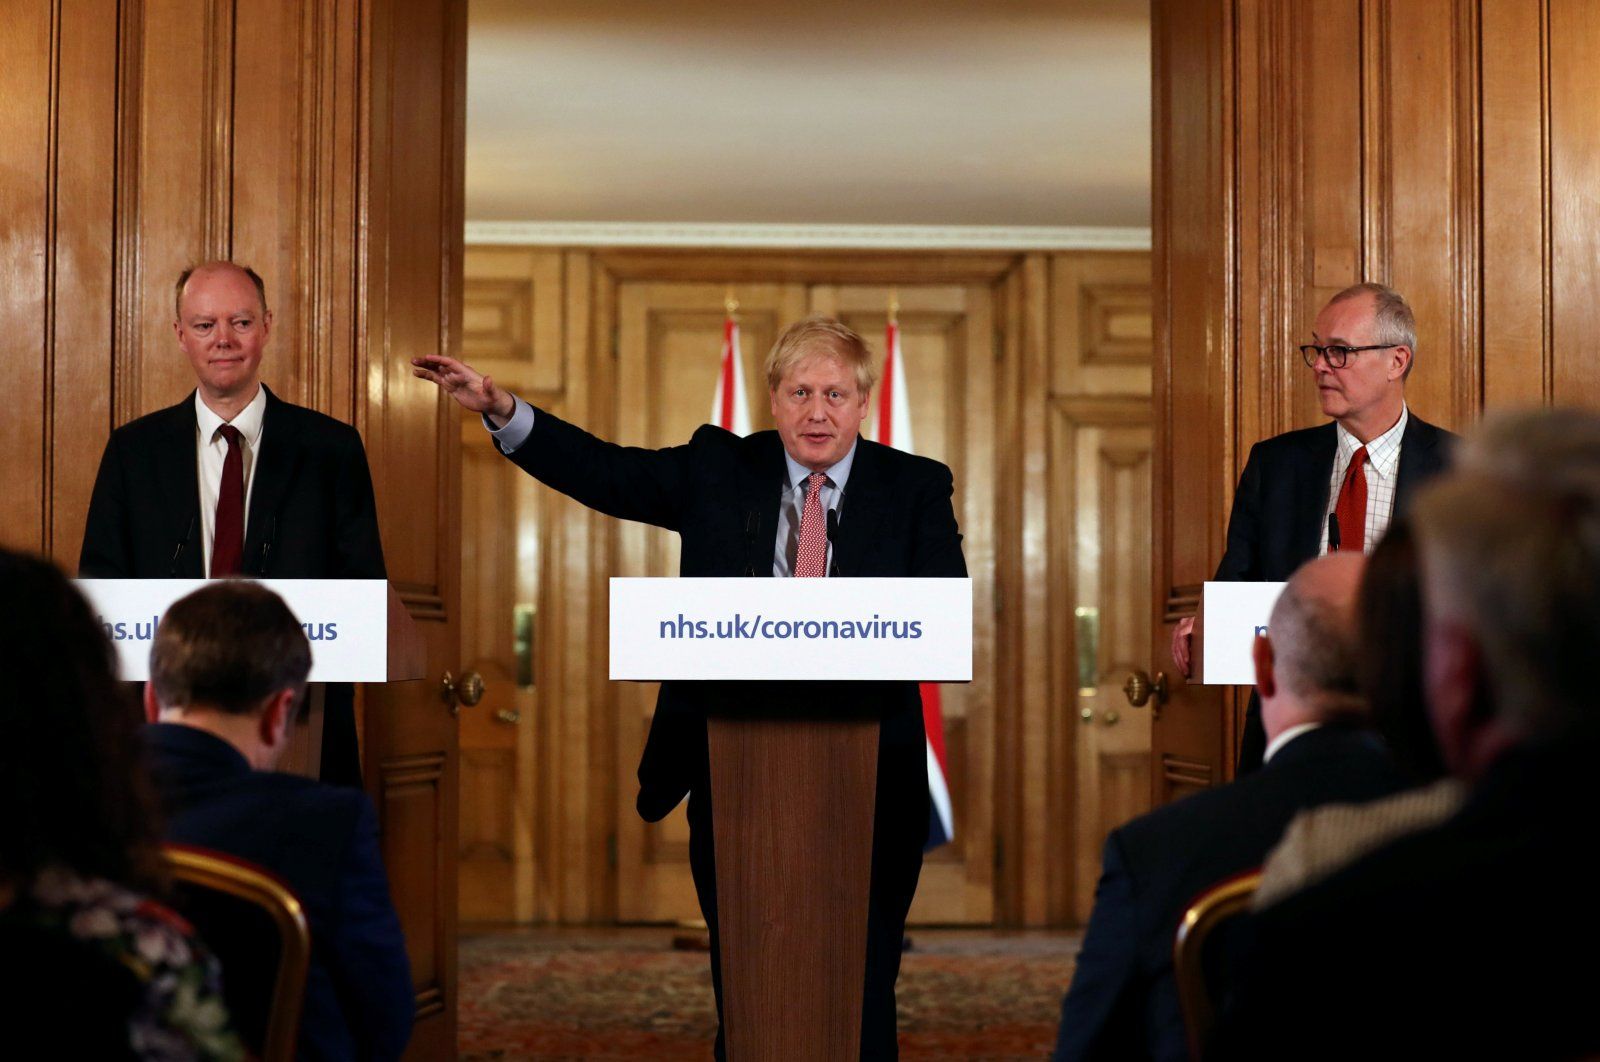 British Prime Minister Boris Johnson, Chief Medical Officer for England, Chris Whitty and Government Chief Scientific Adviser, Sir Patrick Vallance attend a news conference addressing the government's response to the coronavirus outbreak, at Downing Street in London, Britain March 12, 2020. (Reuters Photo)